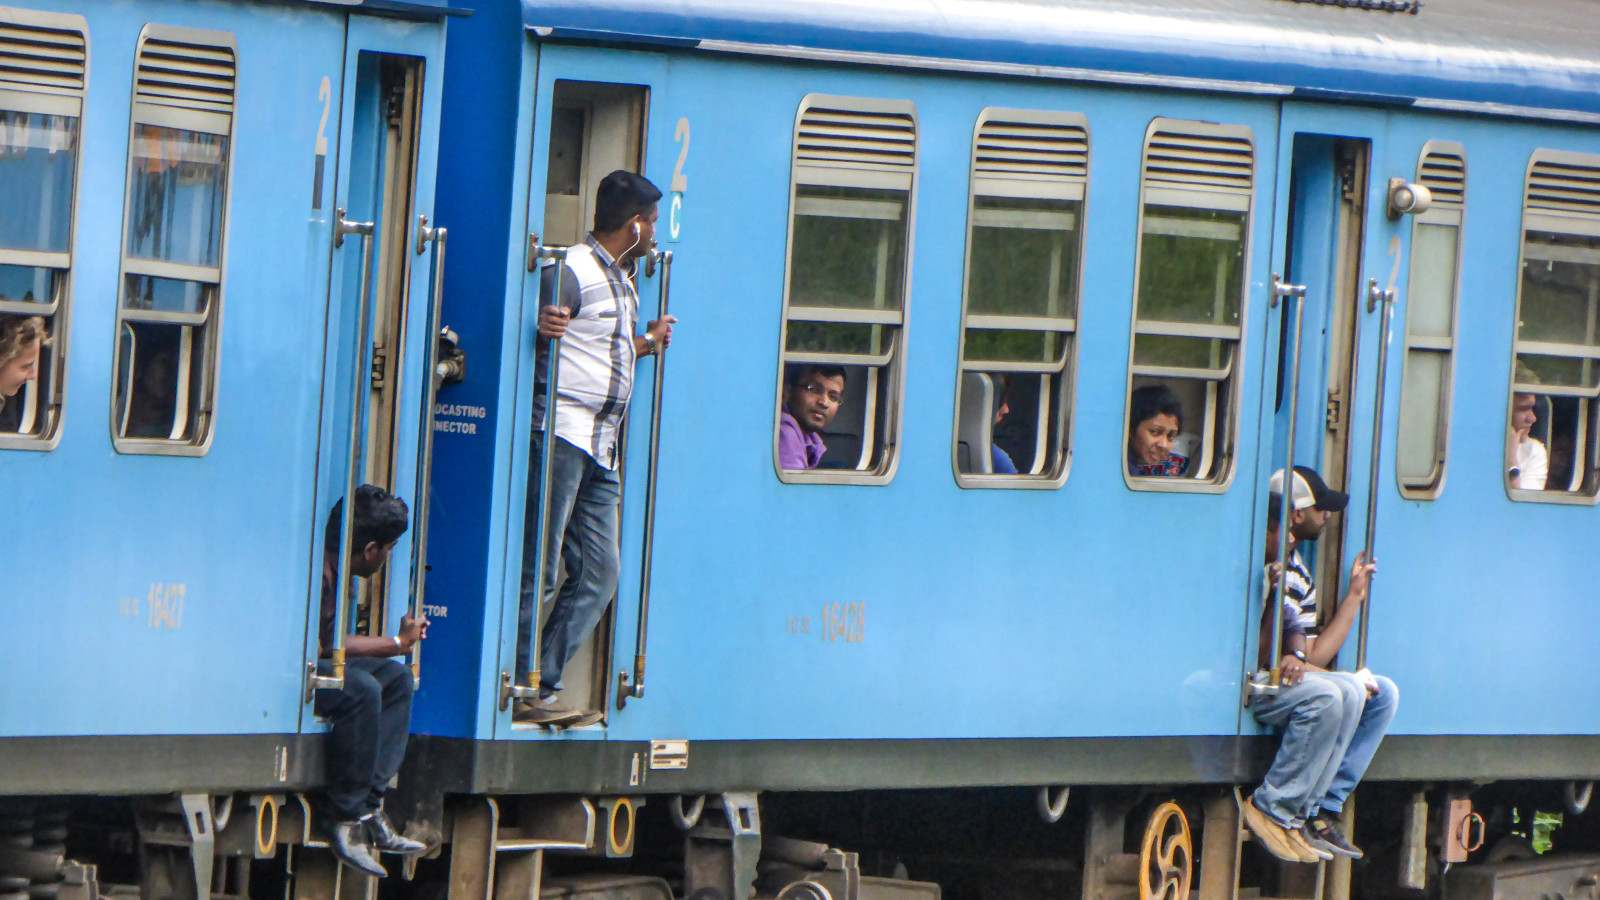 The train system in Sri Lanka dates back from the colonial times, here is a blue train